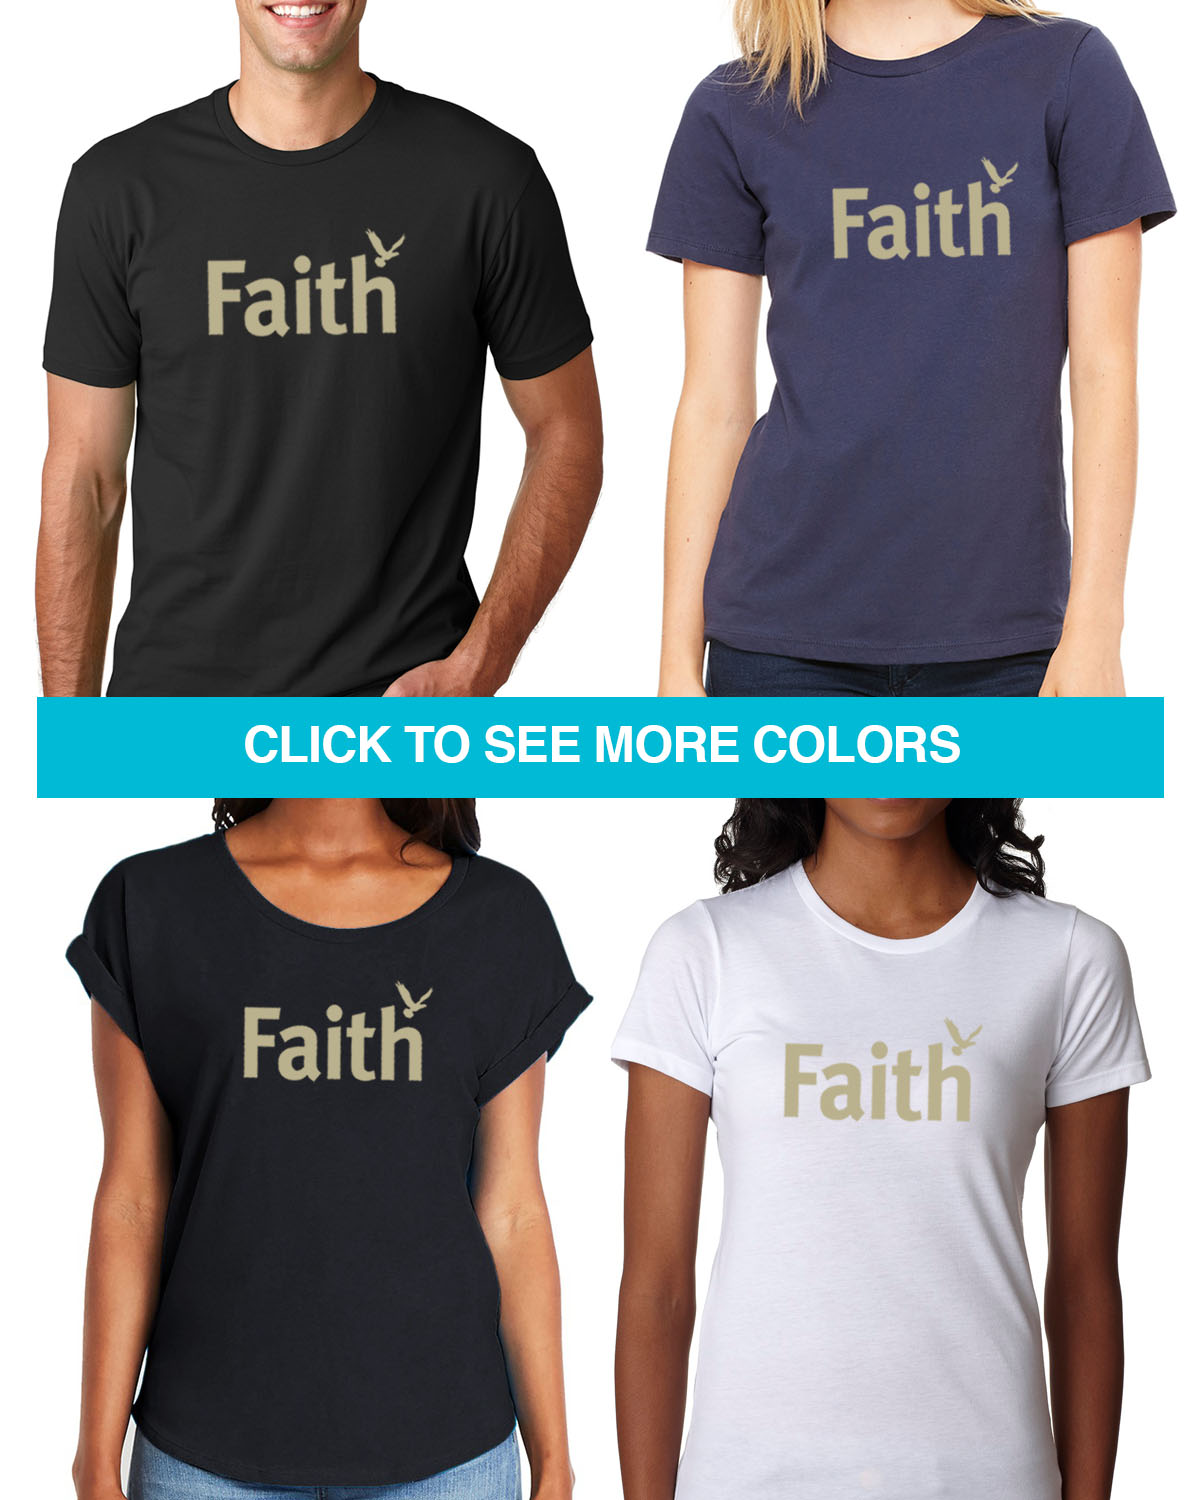 Faith Tees for Men & Women